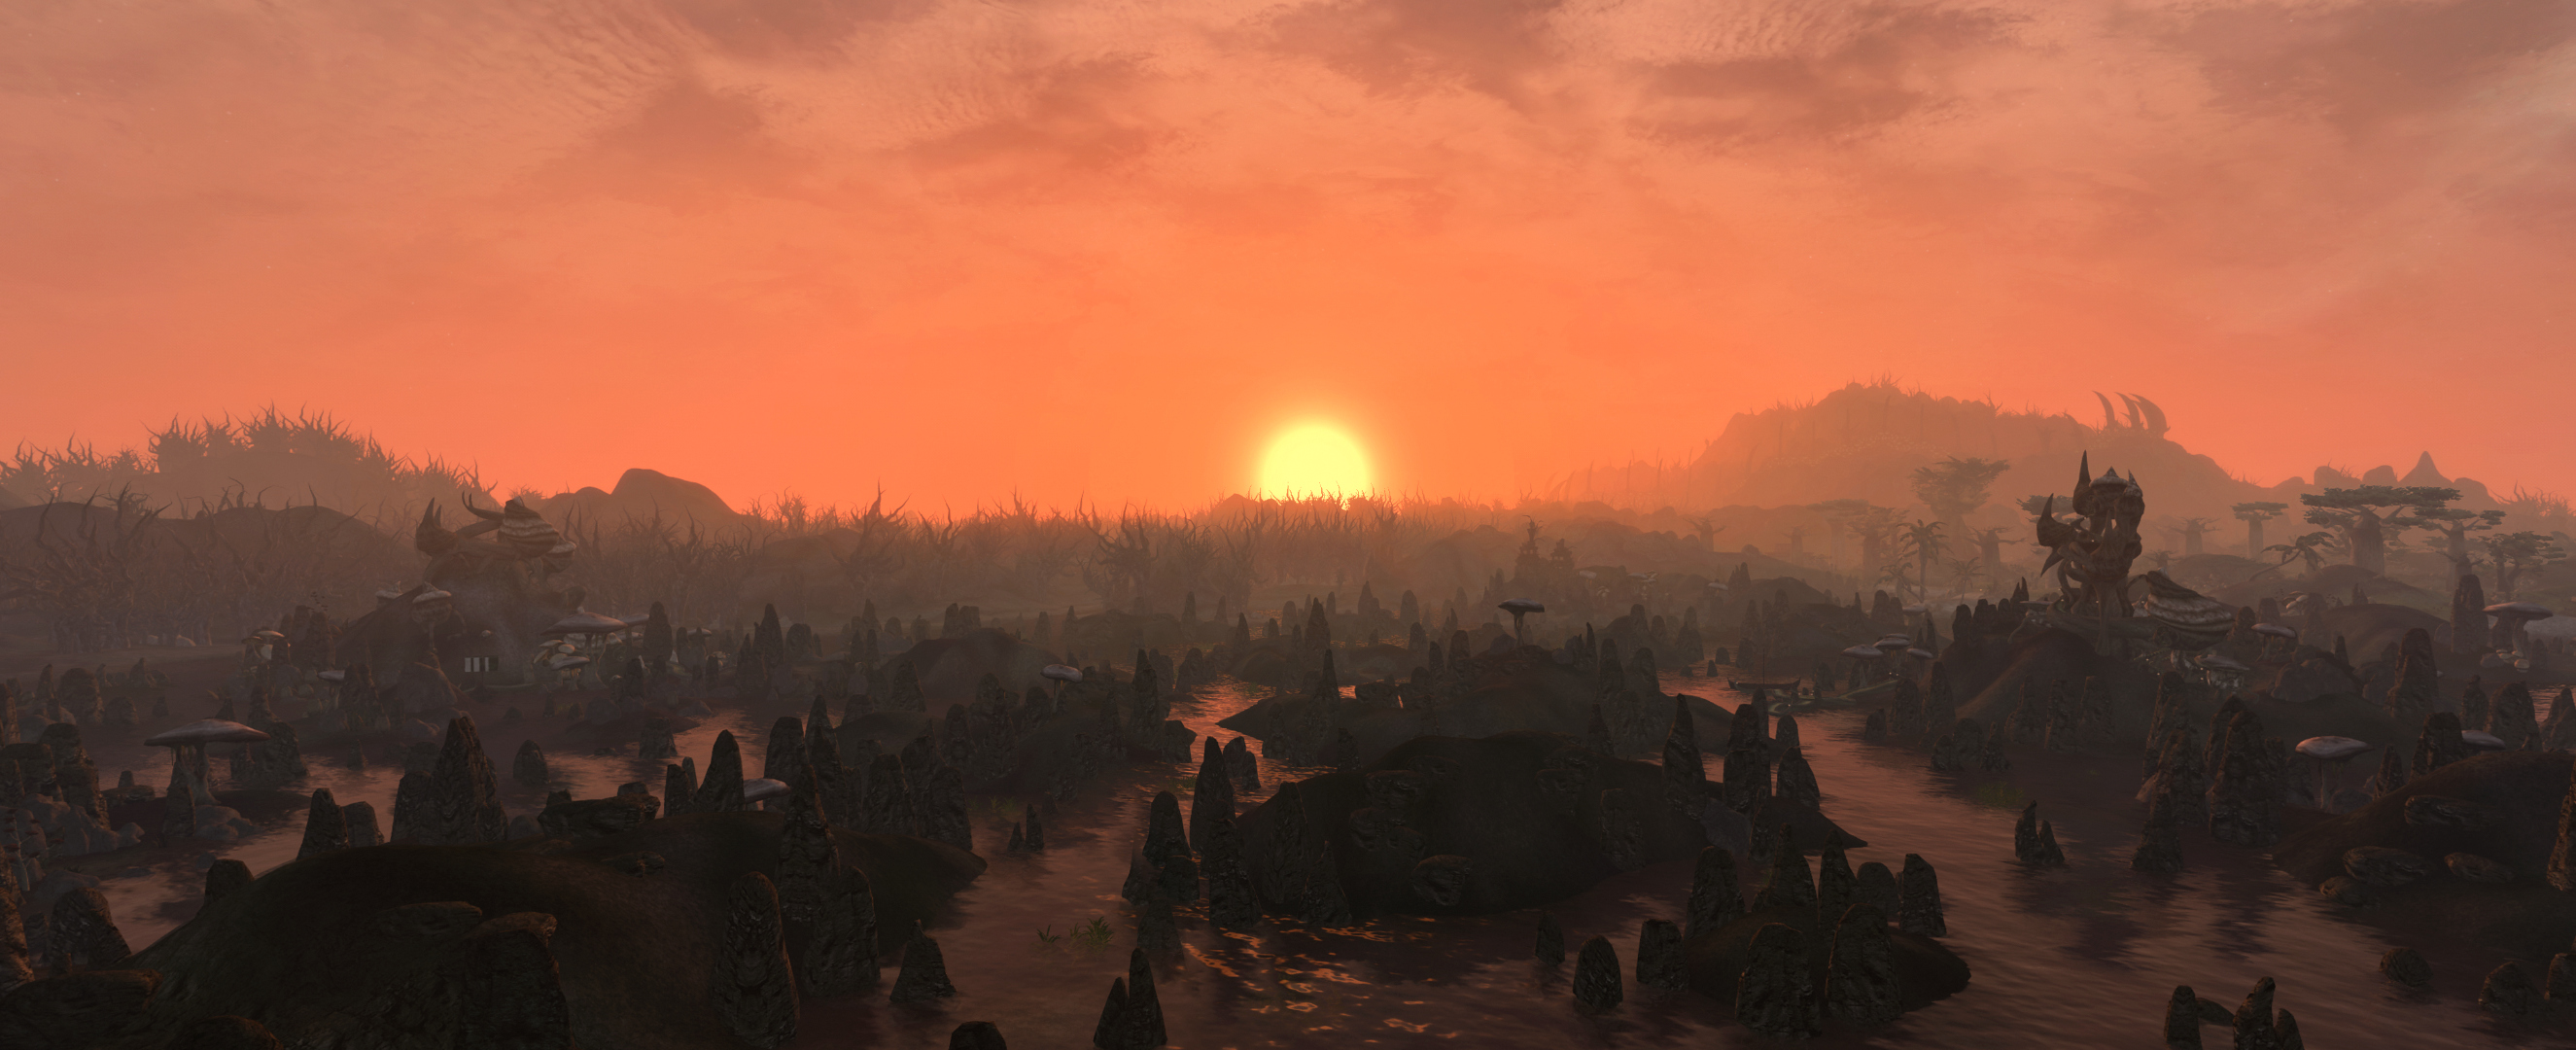 Sunset over Vvanderfell